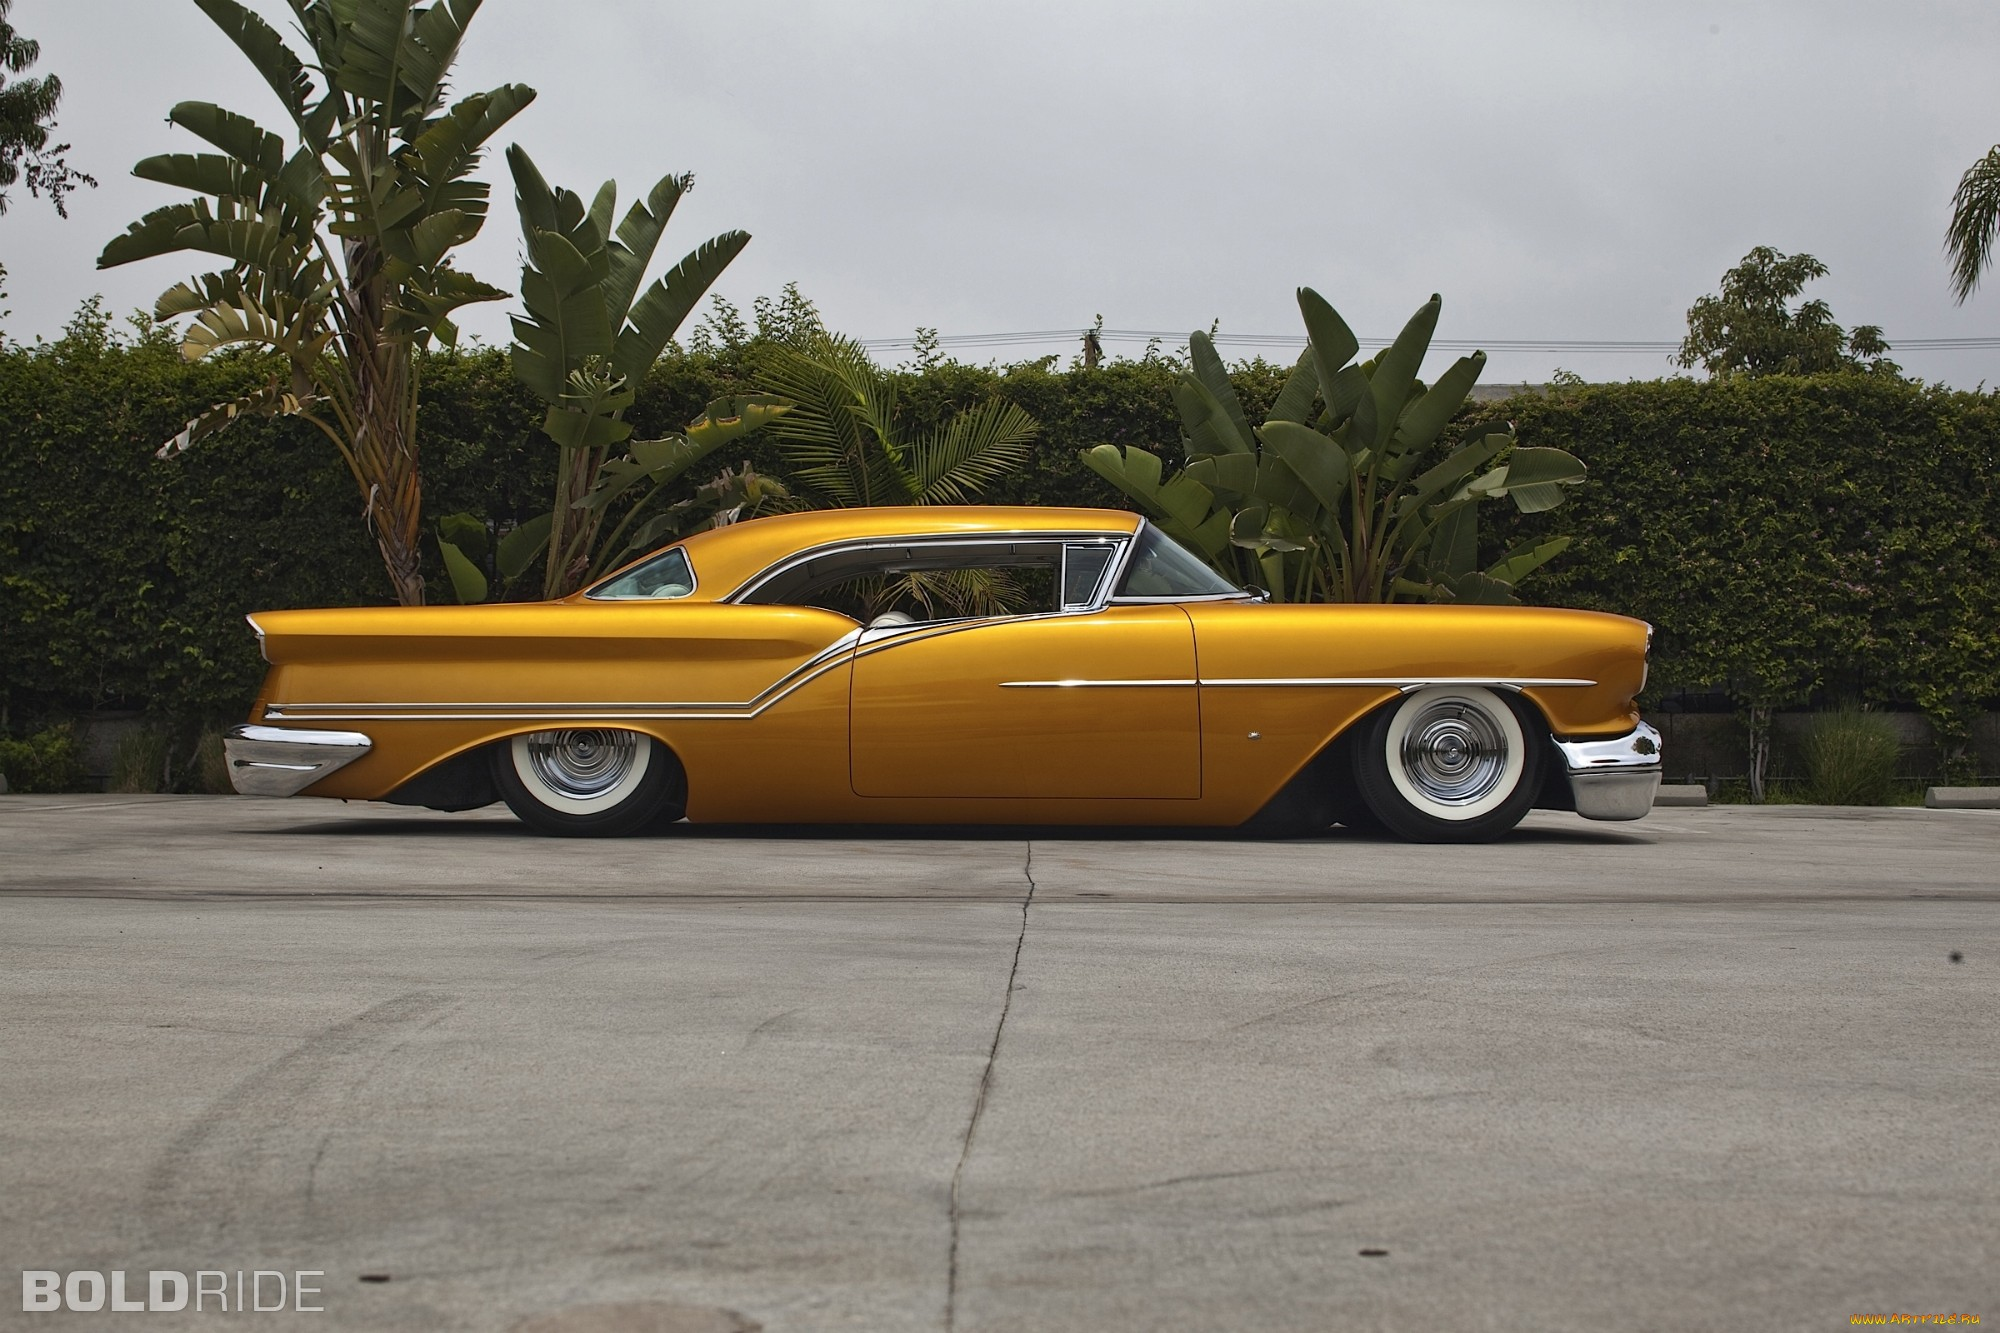 1957 Oldsmobile Custom lowrider classic cars wallpaper  2000x1333